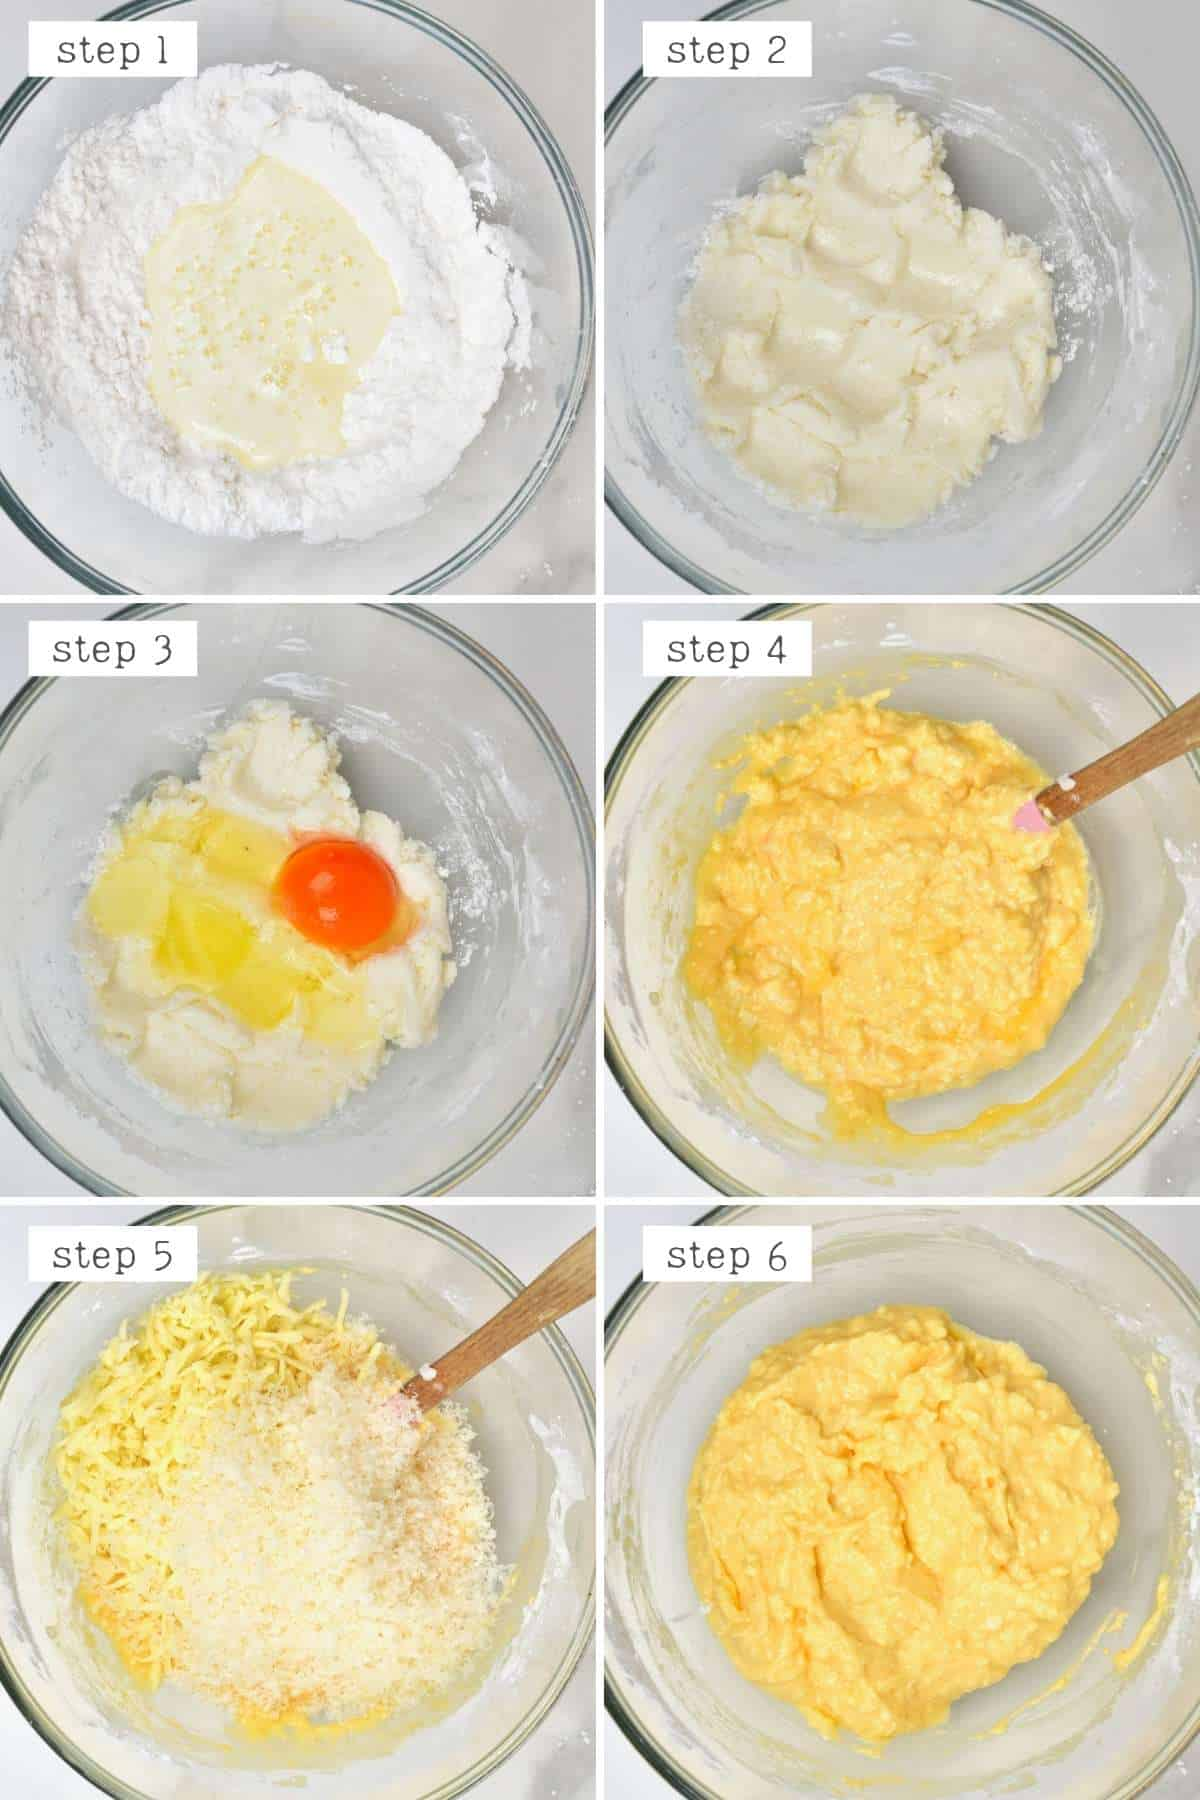 Steps for preparing cheese balls